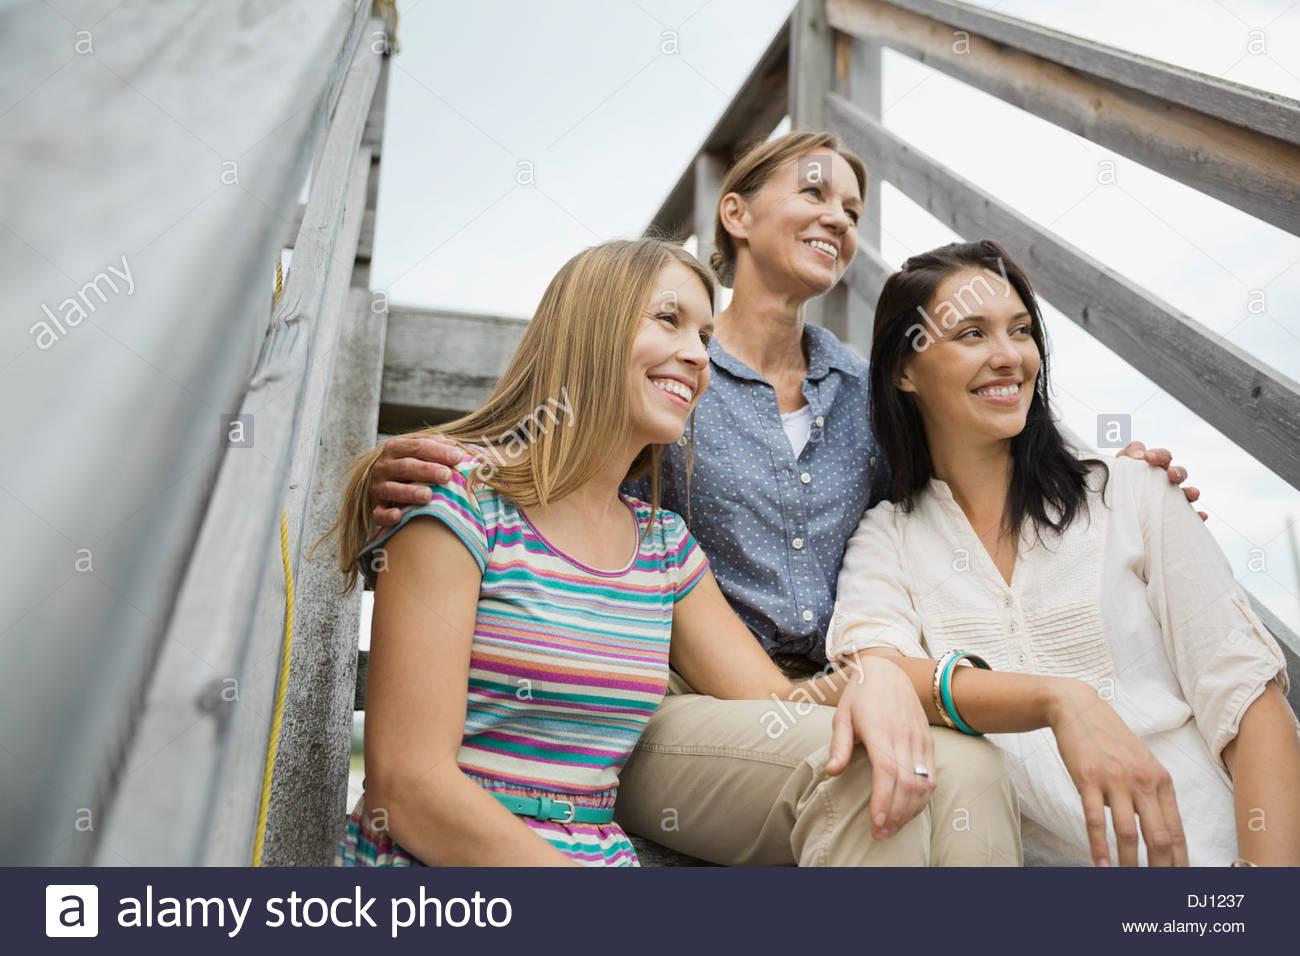 Low angle view of female family members sitting on steps Stock Photo